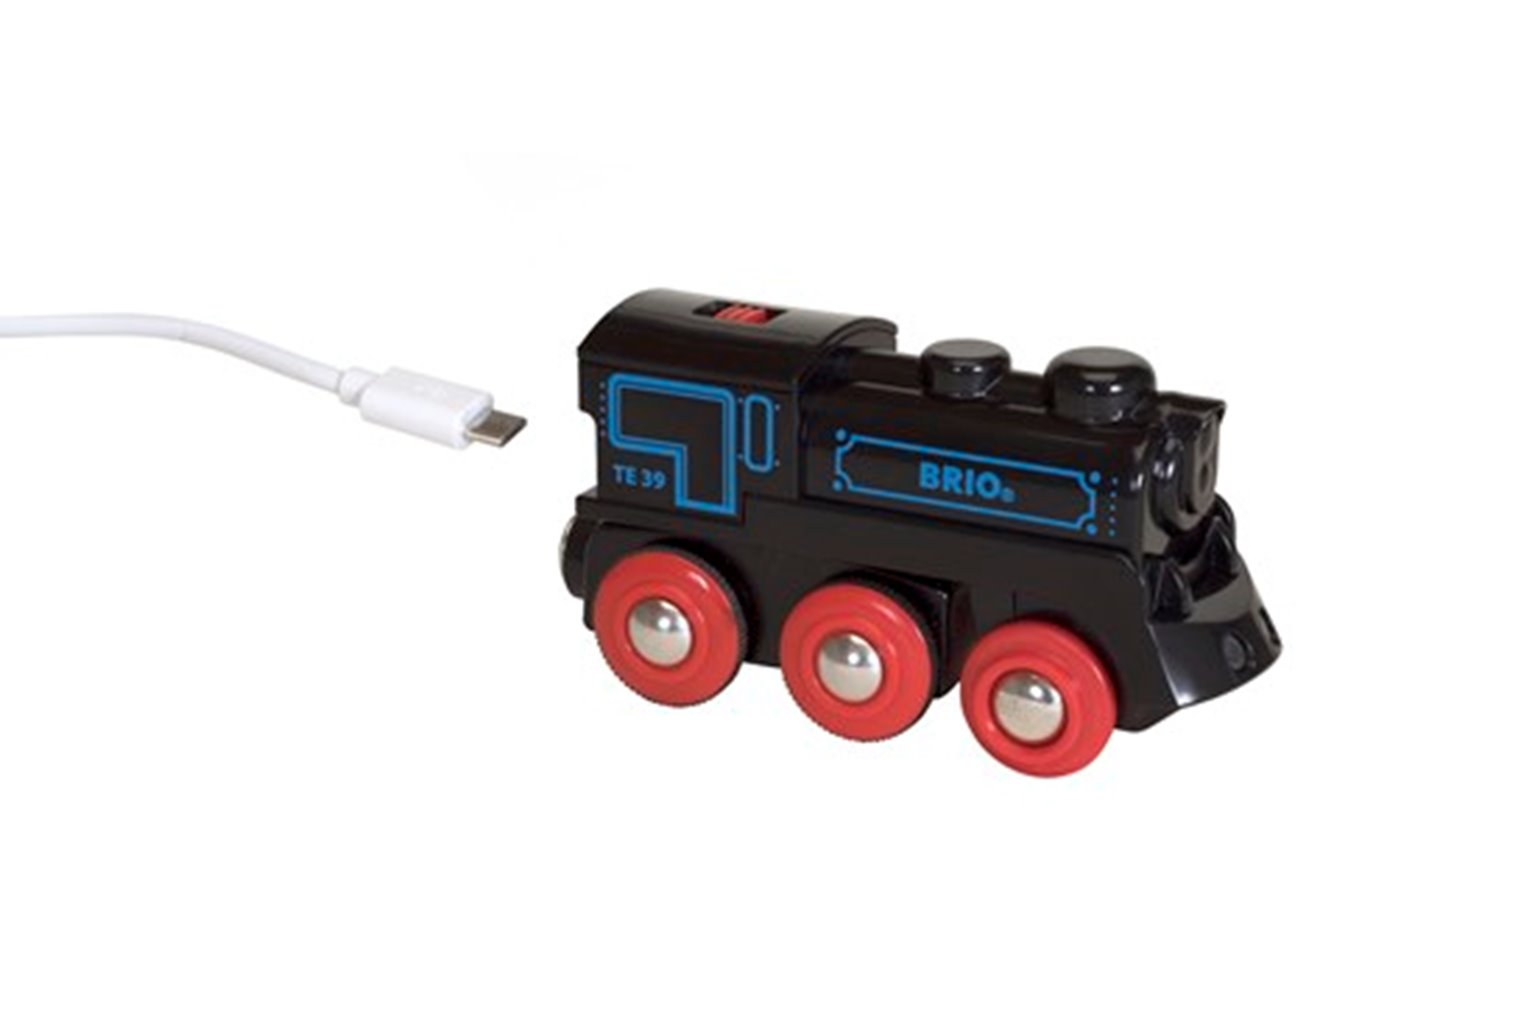 BRIO WORLD - Rechargeable Engine with mini USB cable